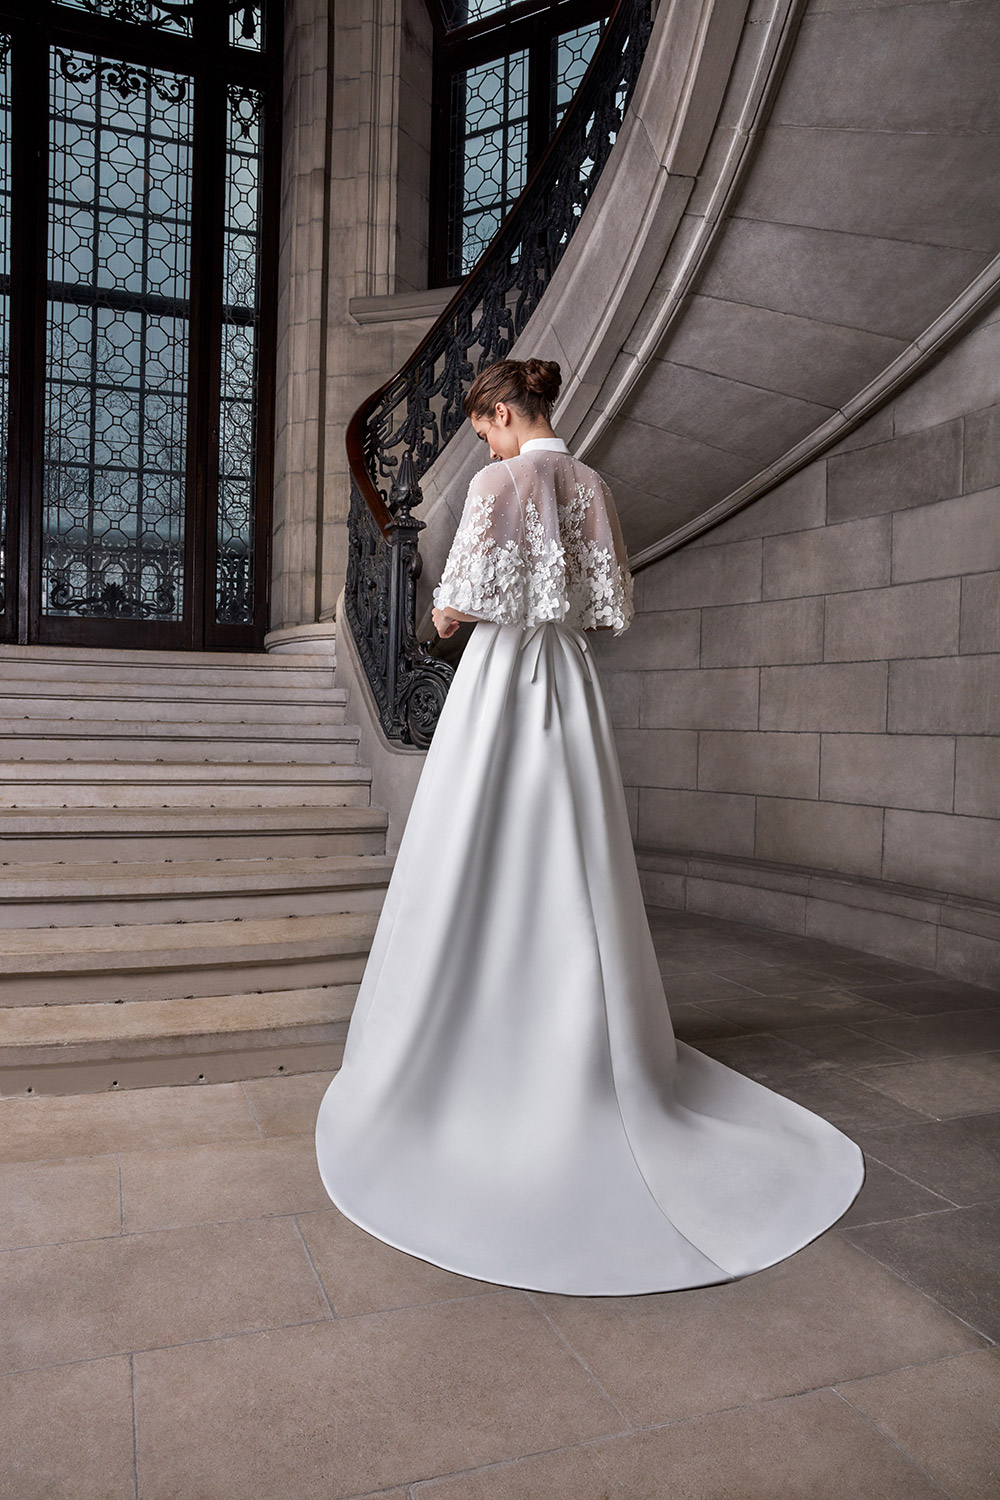 Marie Chantal Cape - Sareh Nouri Spring 2020 Collection. www.theweddingnotebook.com